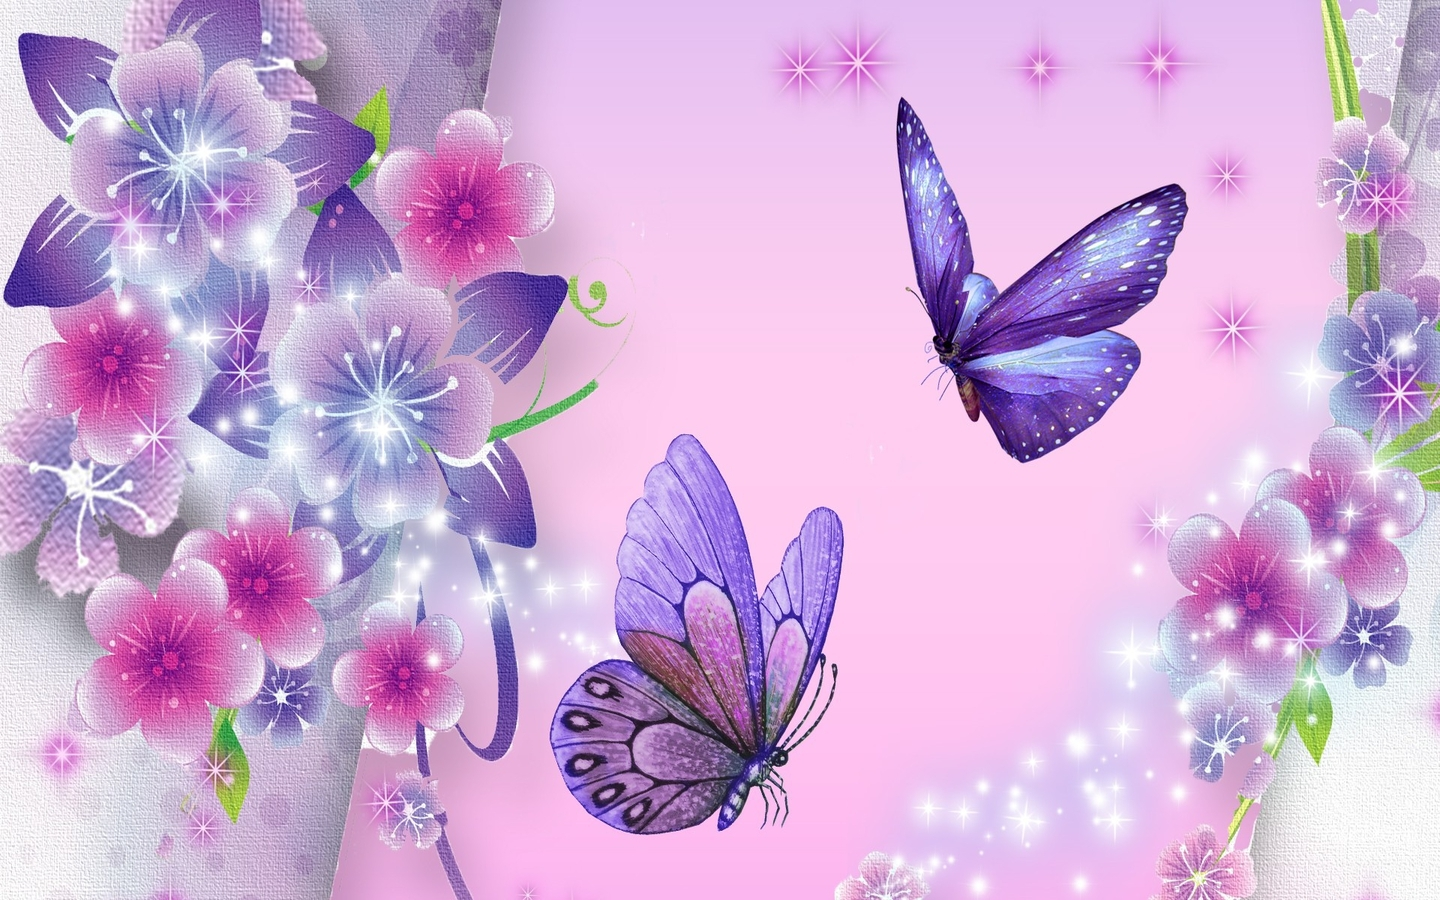 Wallpapers Images For Mobile And Destop Free Butterfly